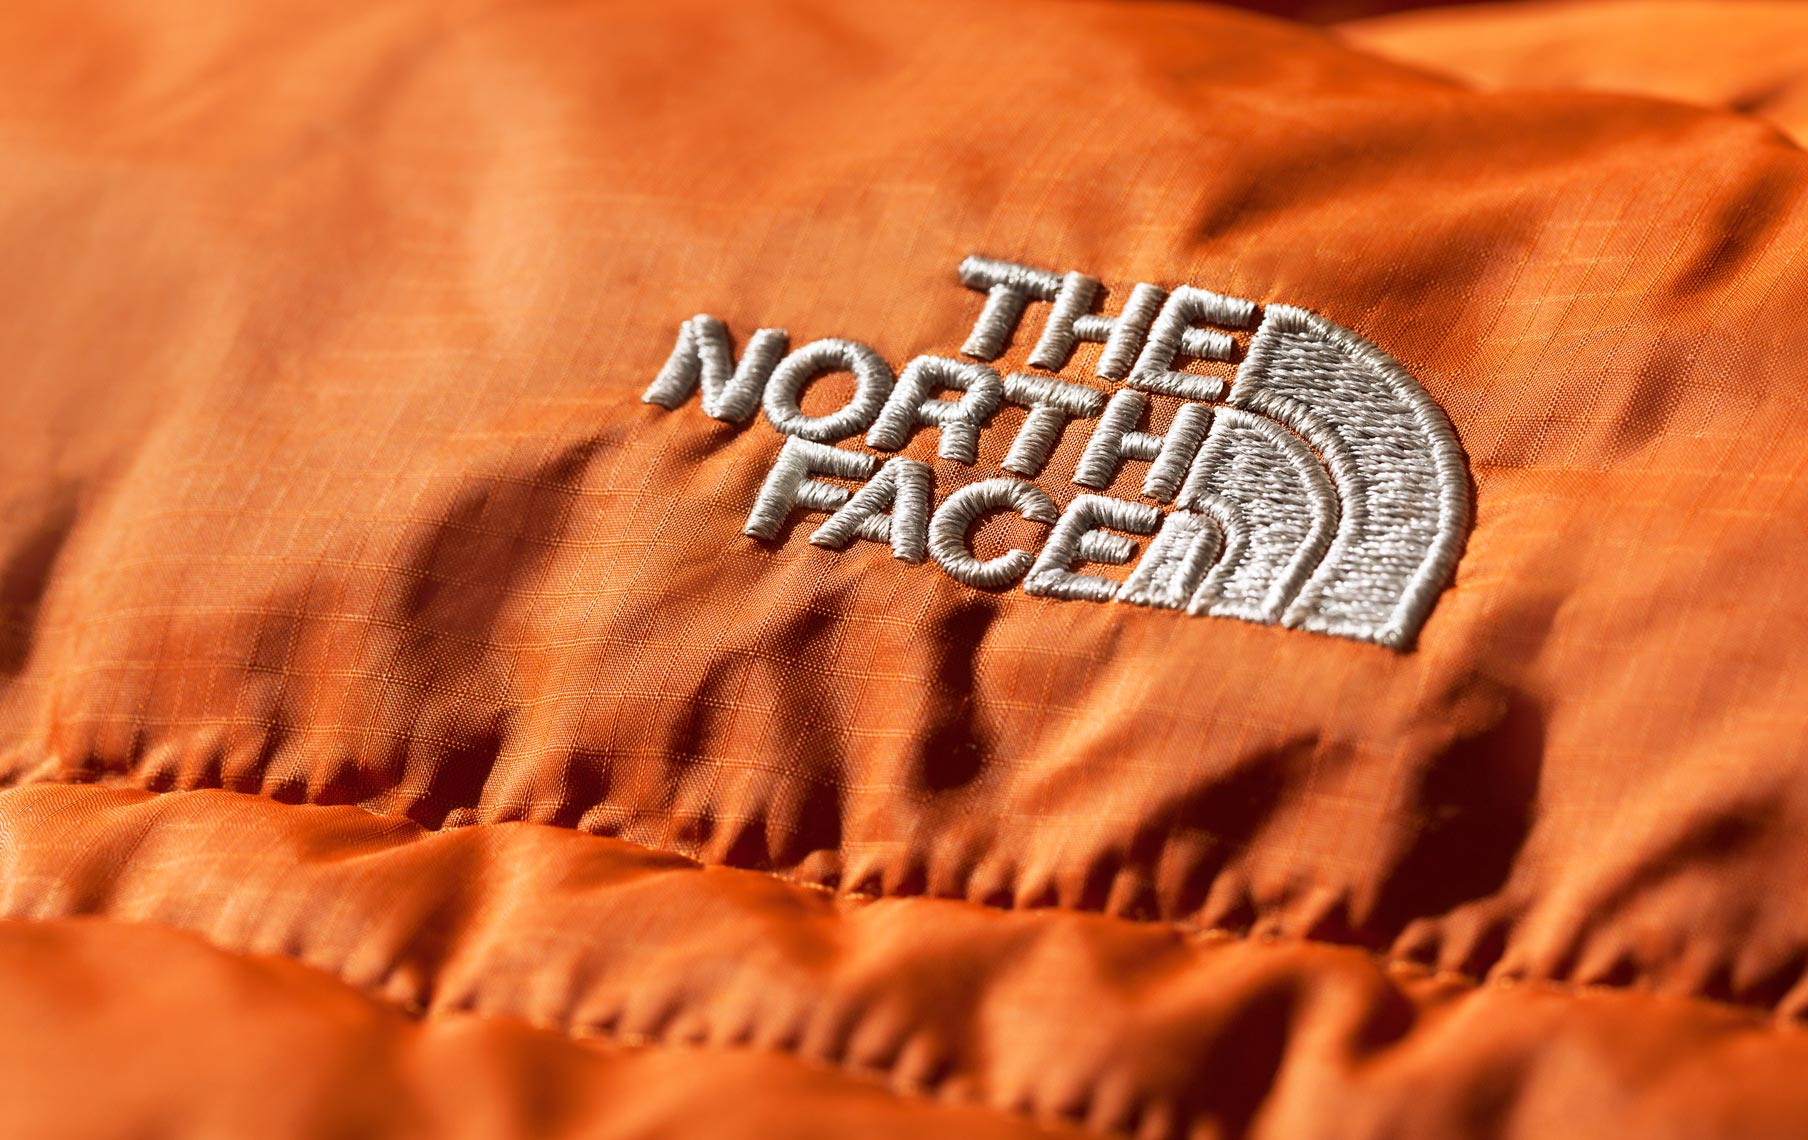 Product Photography Gear North Face Orange Puffer Jacket Logo Hiking Adventure Winter Sport Denver